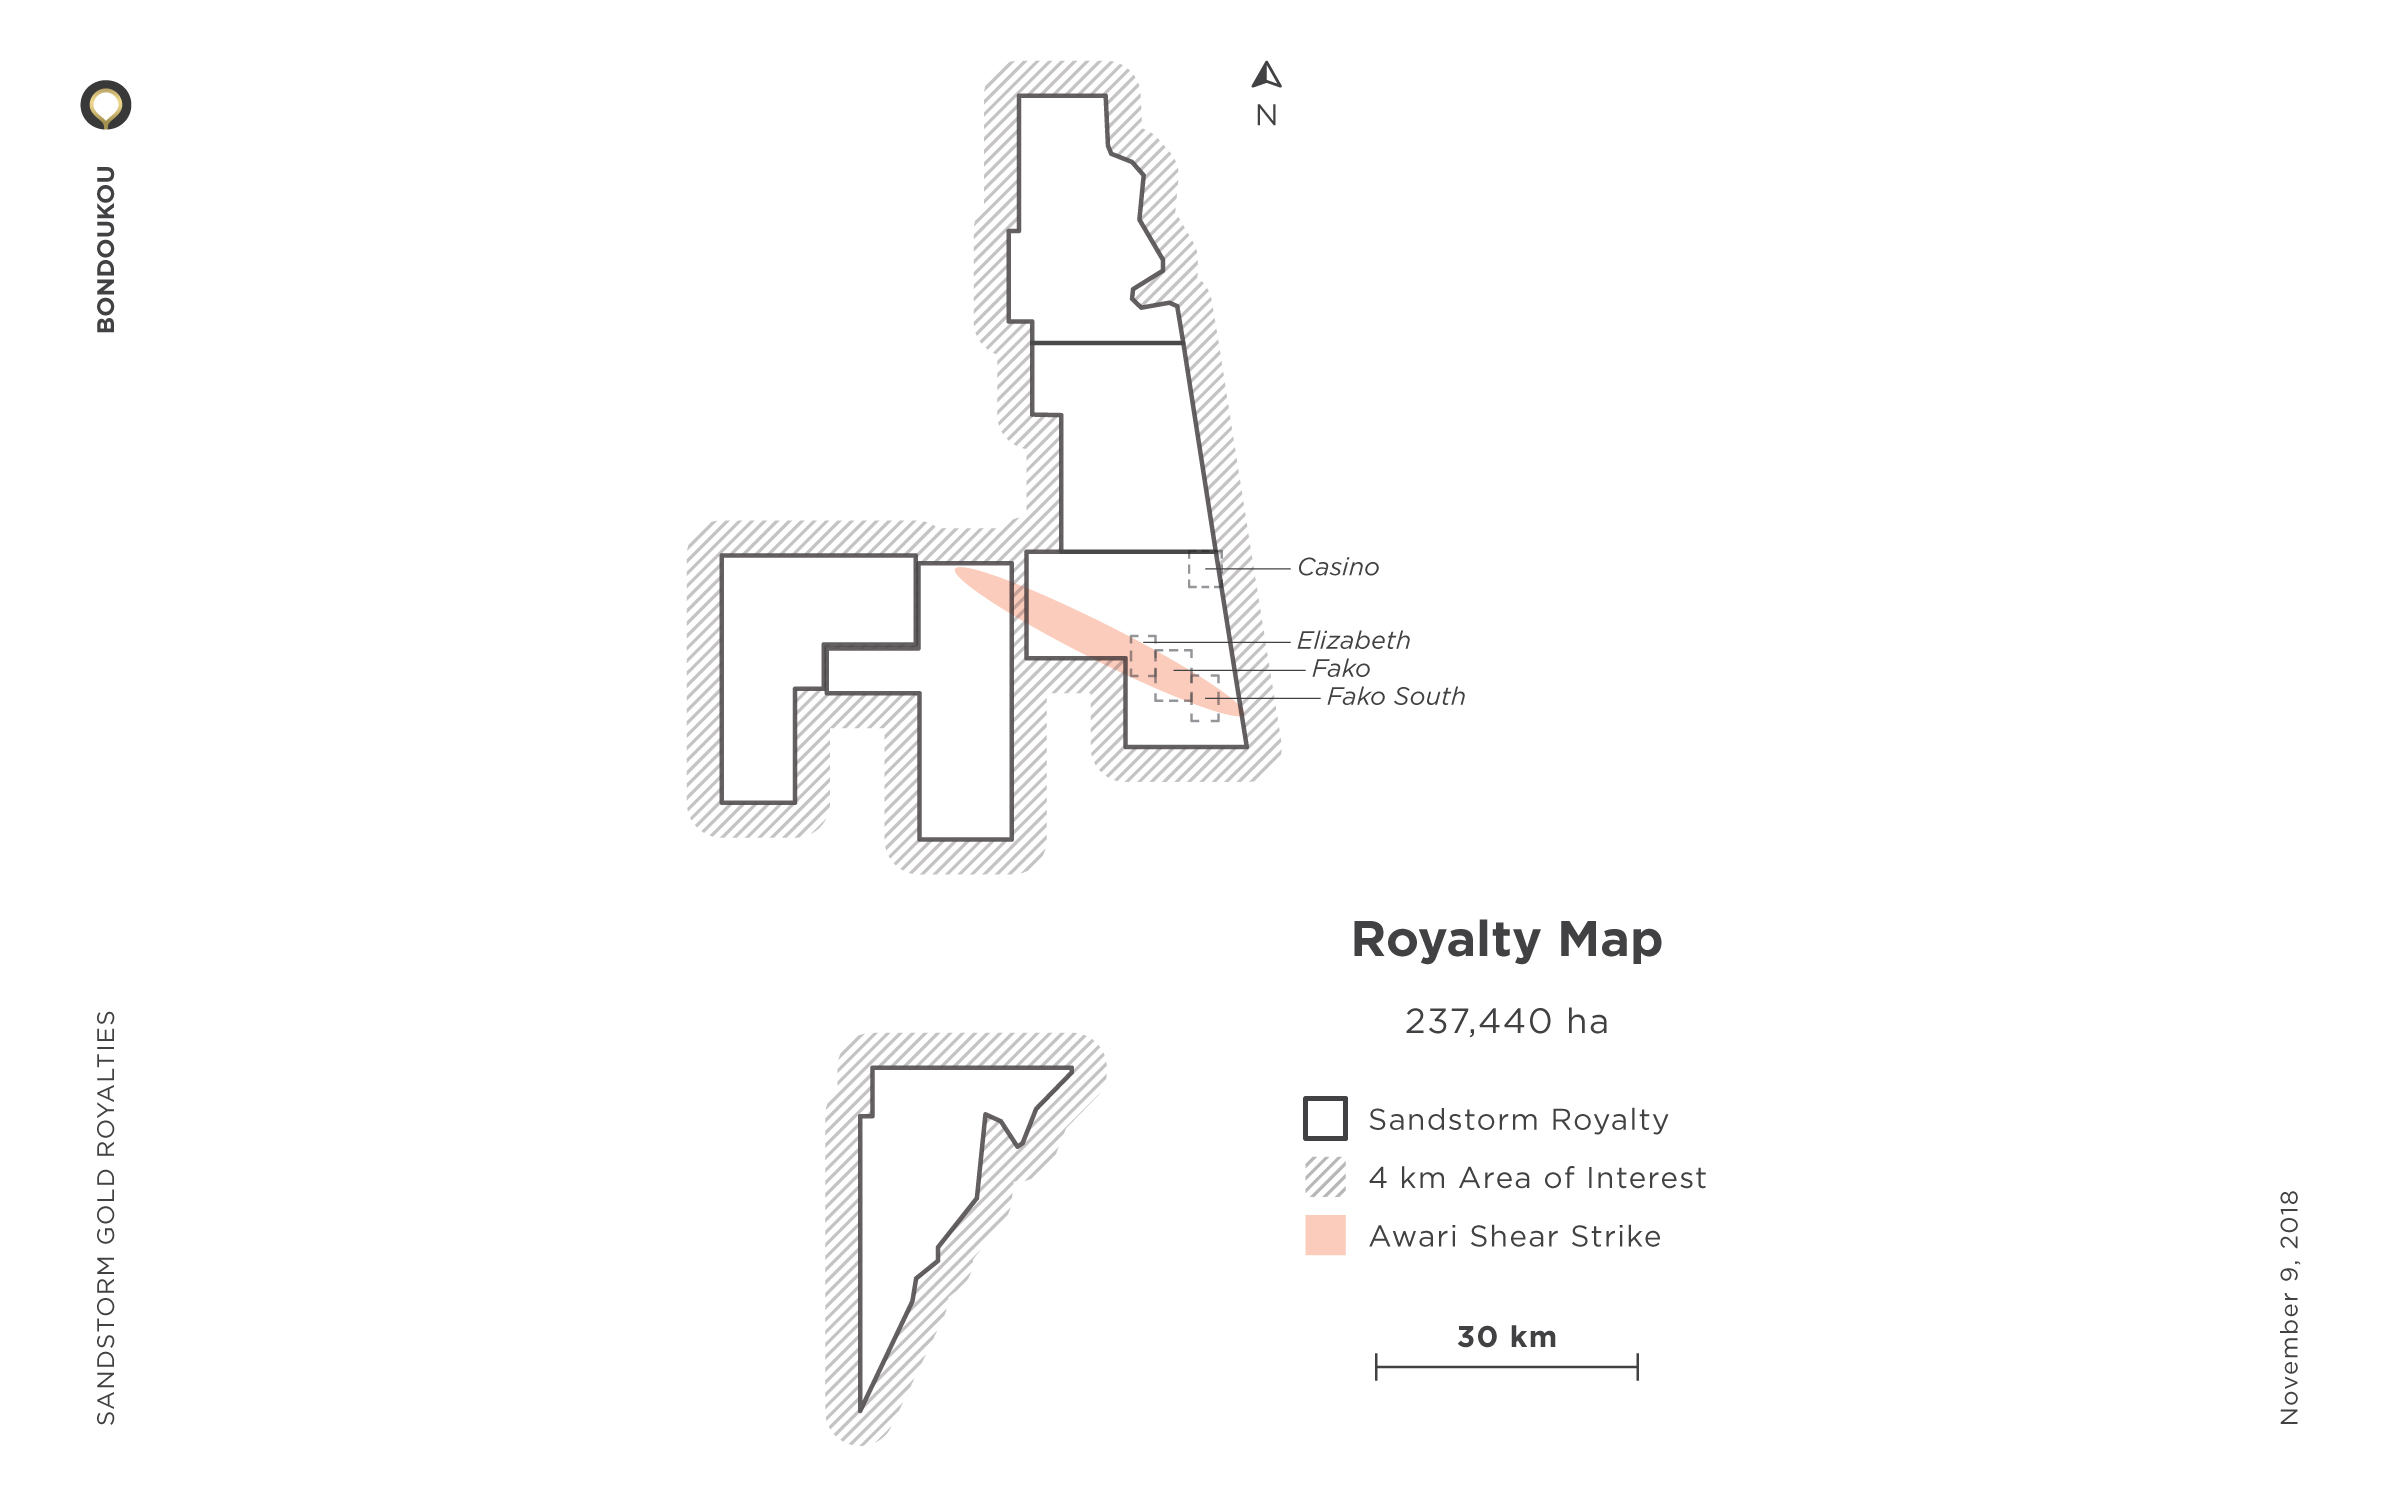 Bondoukou Royalty Map